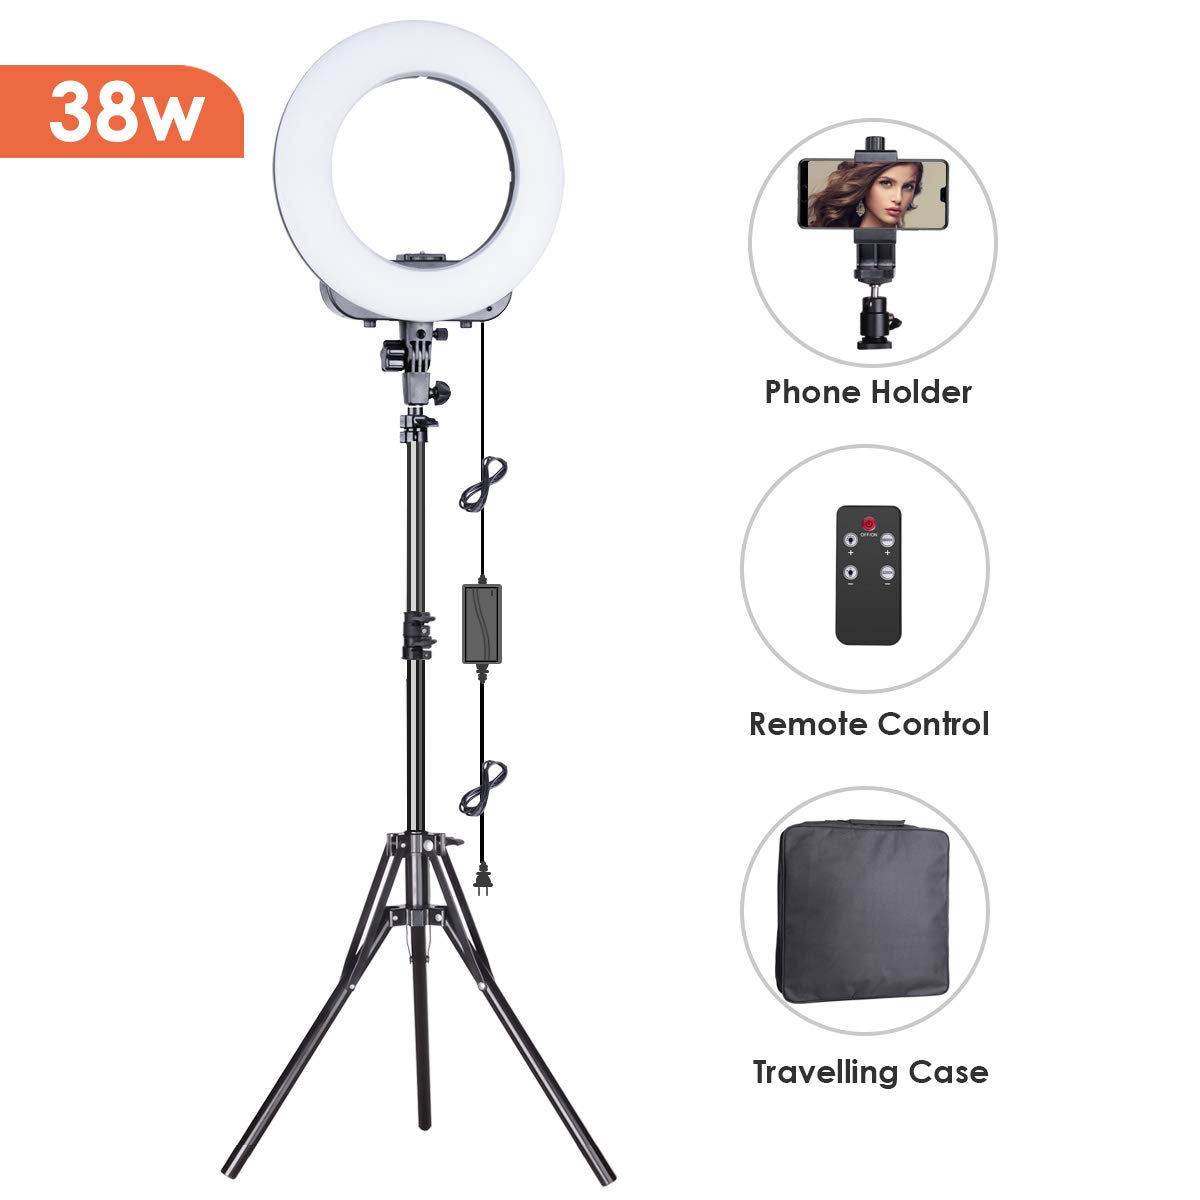 Geekoto Ring Light Led With Camera Flash Circuit Further Disposable Stand And Phone Holder 14 Inches Outer Lighting Kit 38w 3200k 5500k Remote Control For Youtube Video Shooting Makeup Photography Photo